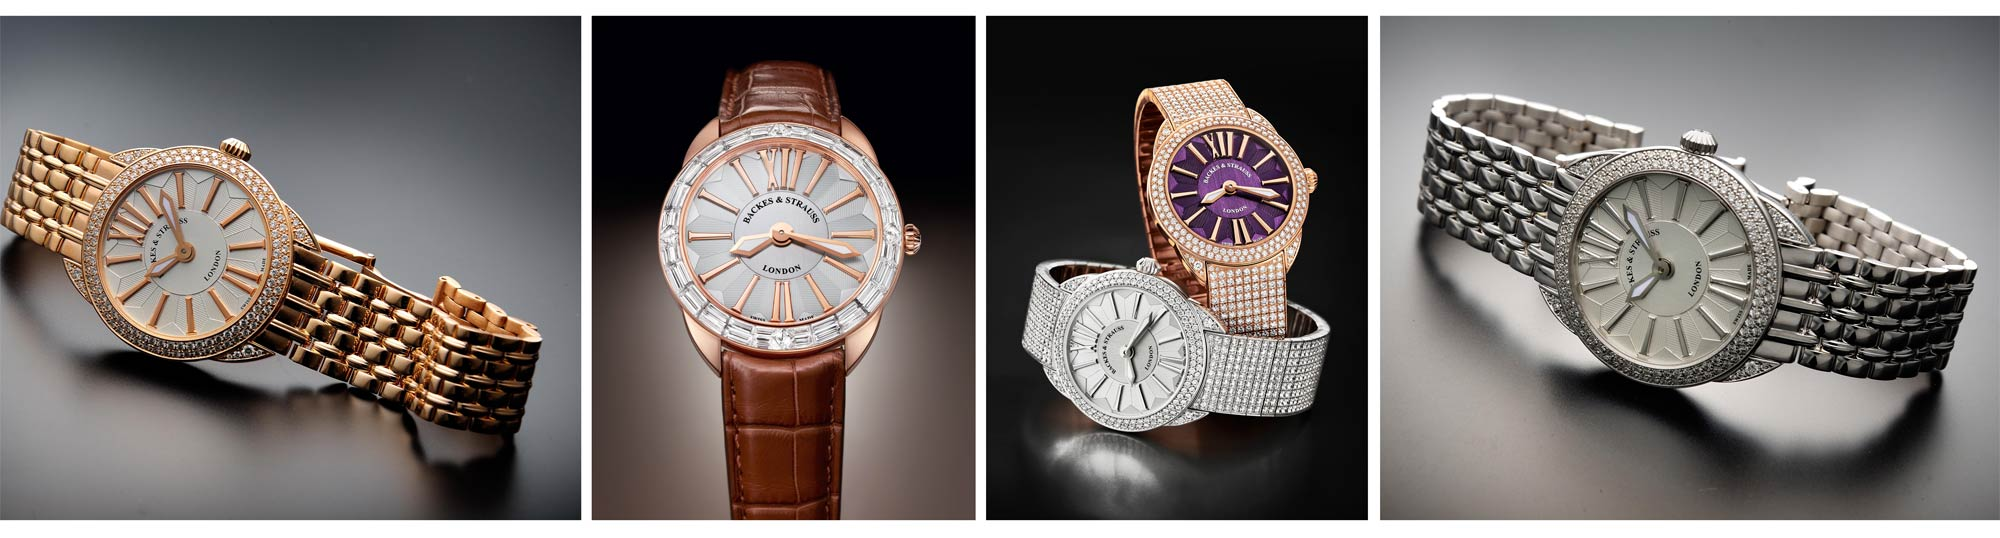 The four new models in the Renaissance collection